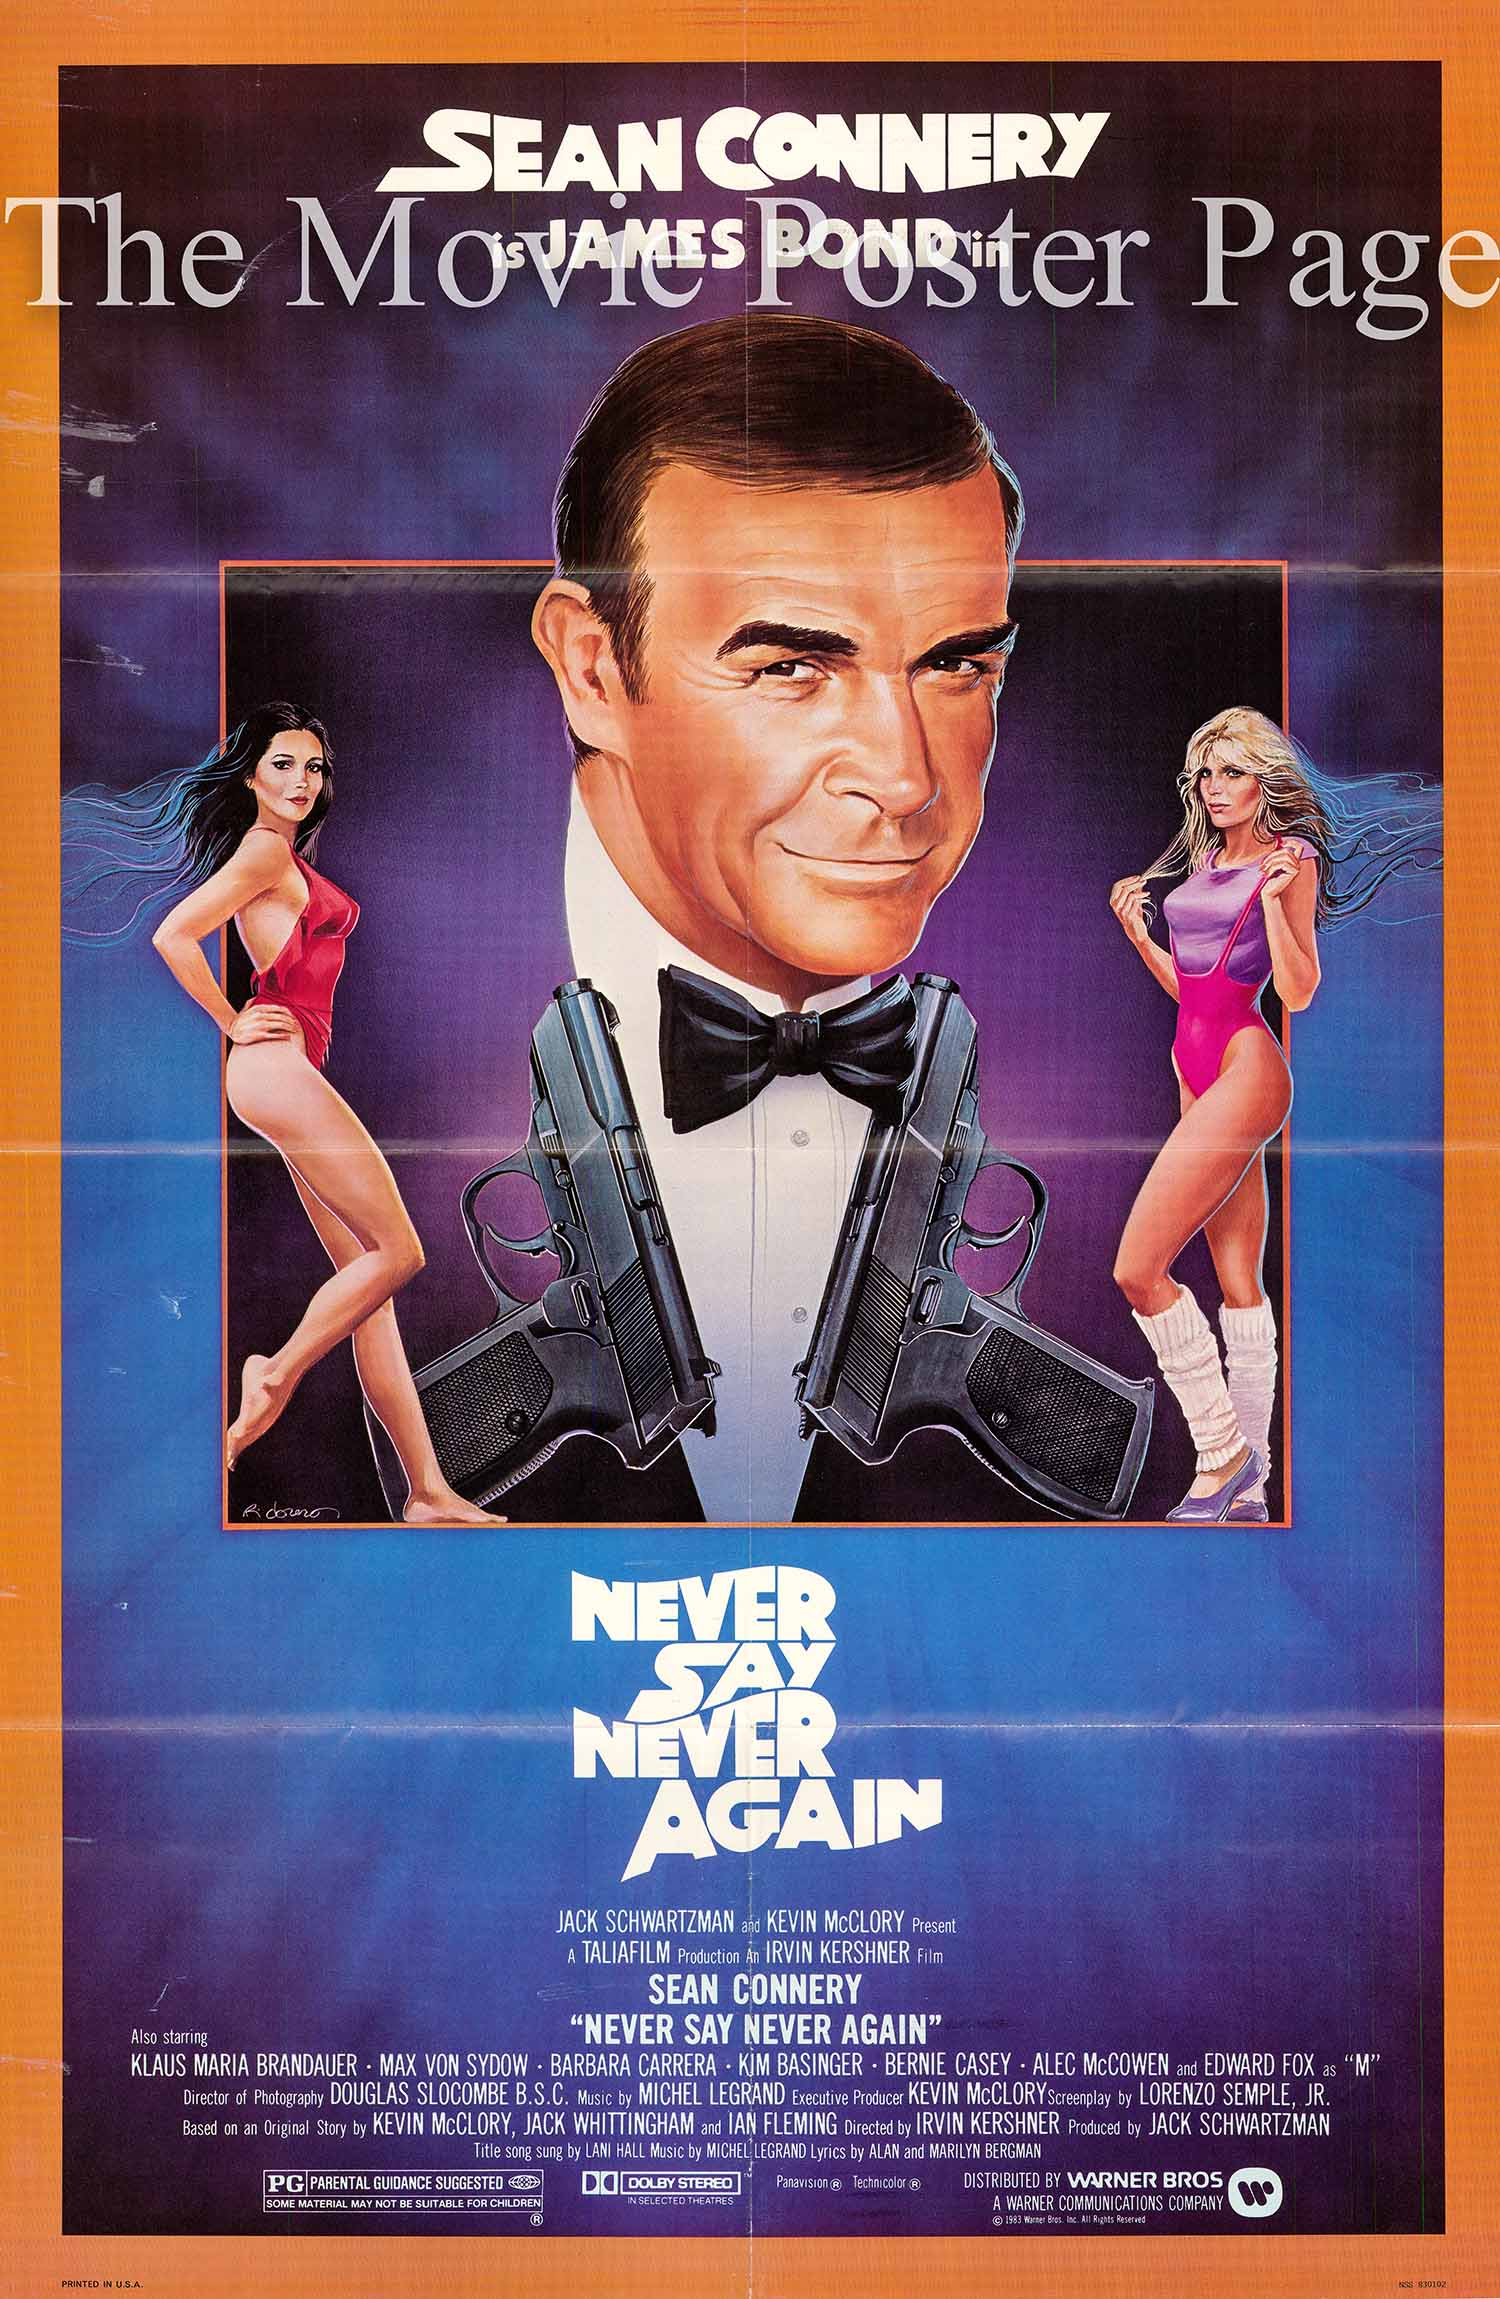 Pictured is a US promotional poster for the 1983 Irvin Kershner film Never Say Never Again starring Sean Connery as James Bond.